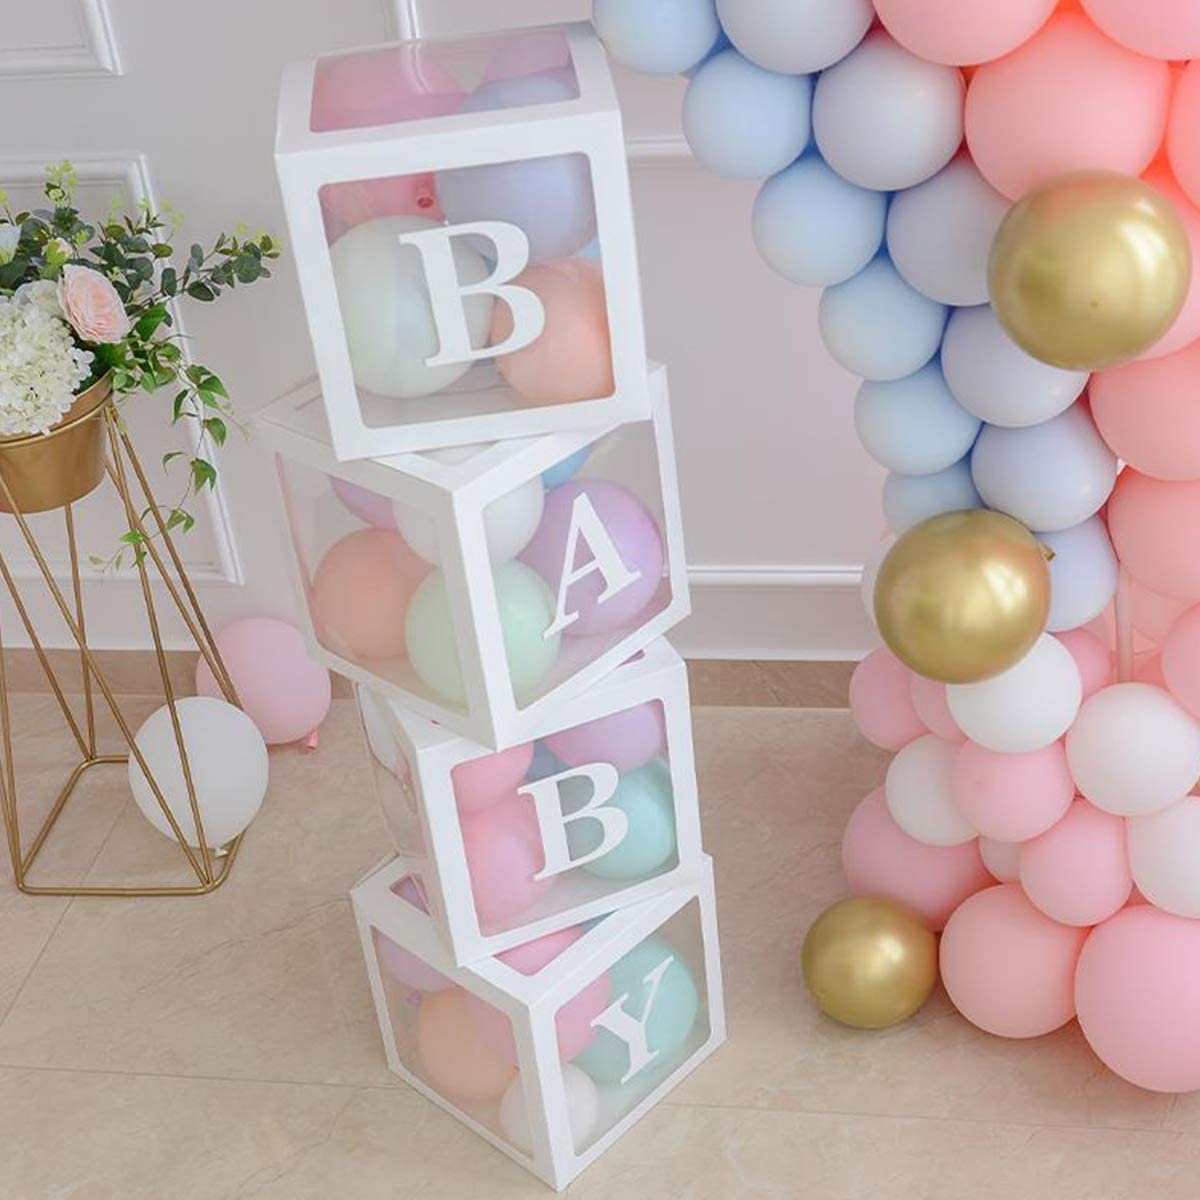 Baby Shower Decorations For Girl Balloon Box Transparent Balloon Decorations Boxes For Baby First Birthday Party Decorations Girls Birthday Party Decorations Home Decor Baby Girl Favors Price In Uae Amazon Uae